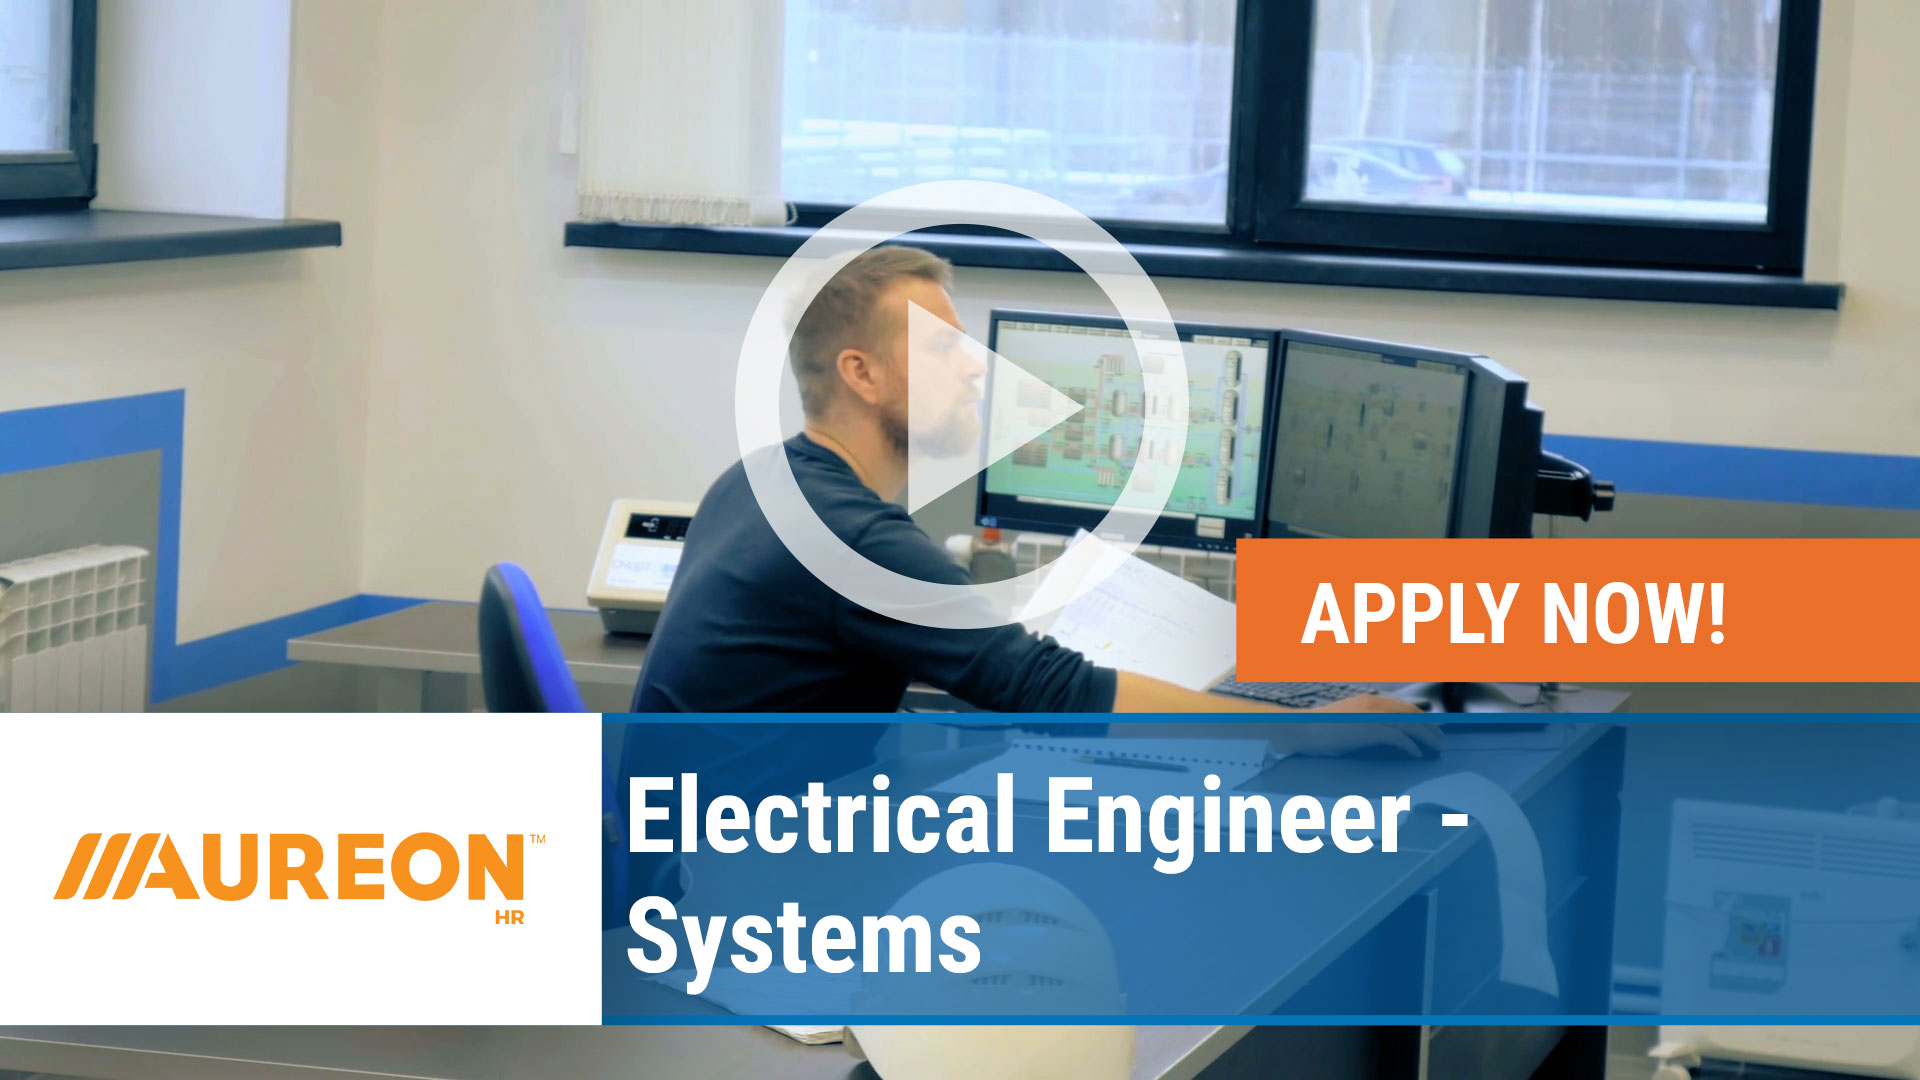 Watch our careers video for available job opening Electrical Engineer - Systems in Des Moines,  Iowa